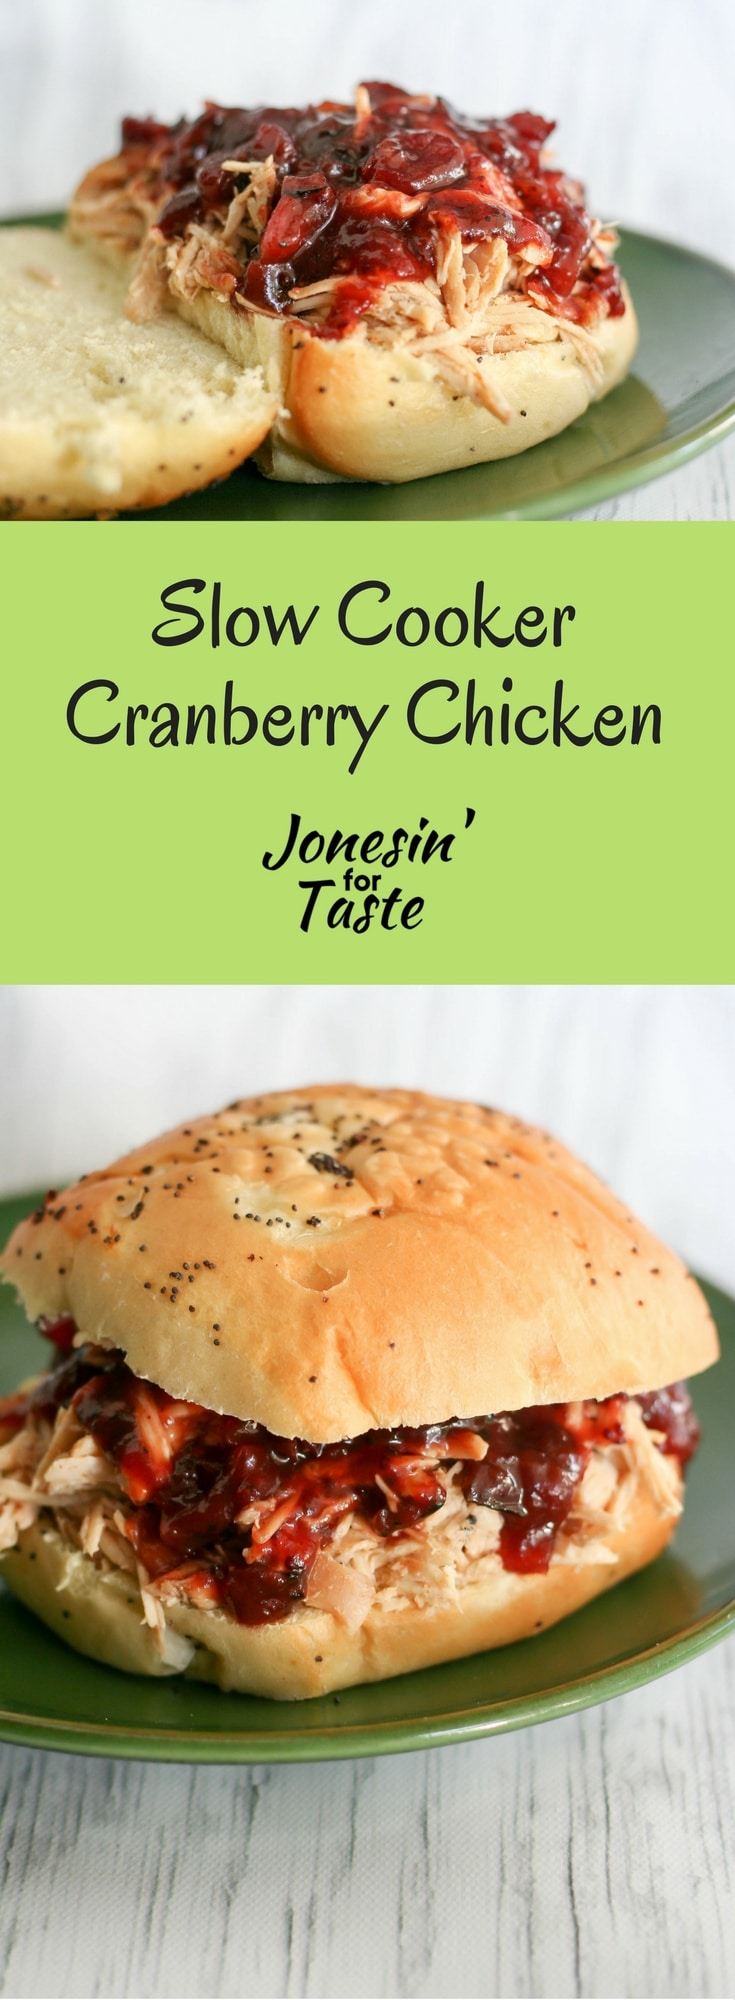 Slow Cooker Cranberry Chicken Sandwiches make for an easy meal with a quick cooking semi homemade whole berry cranberry BBQ sauce. #cranberryweek #slowcookerchicken